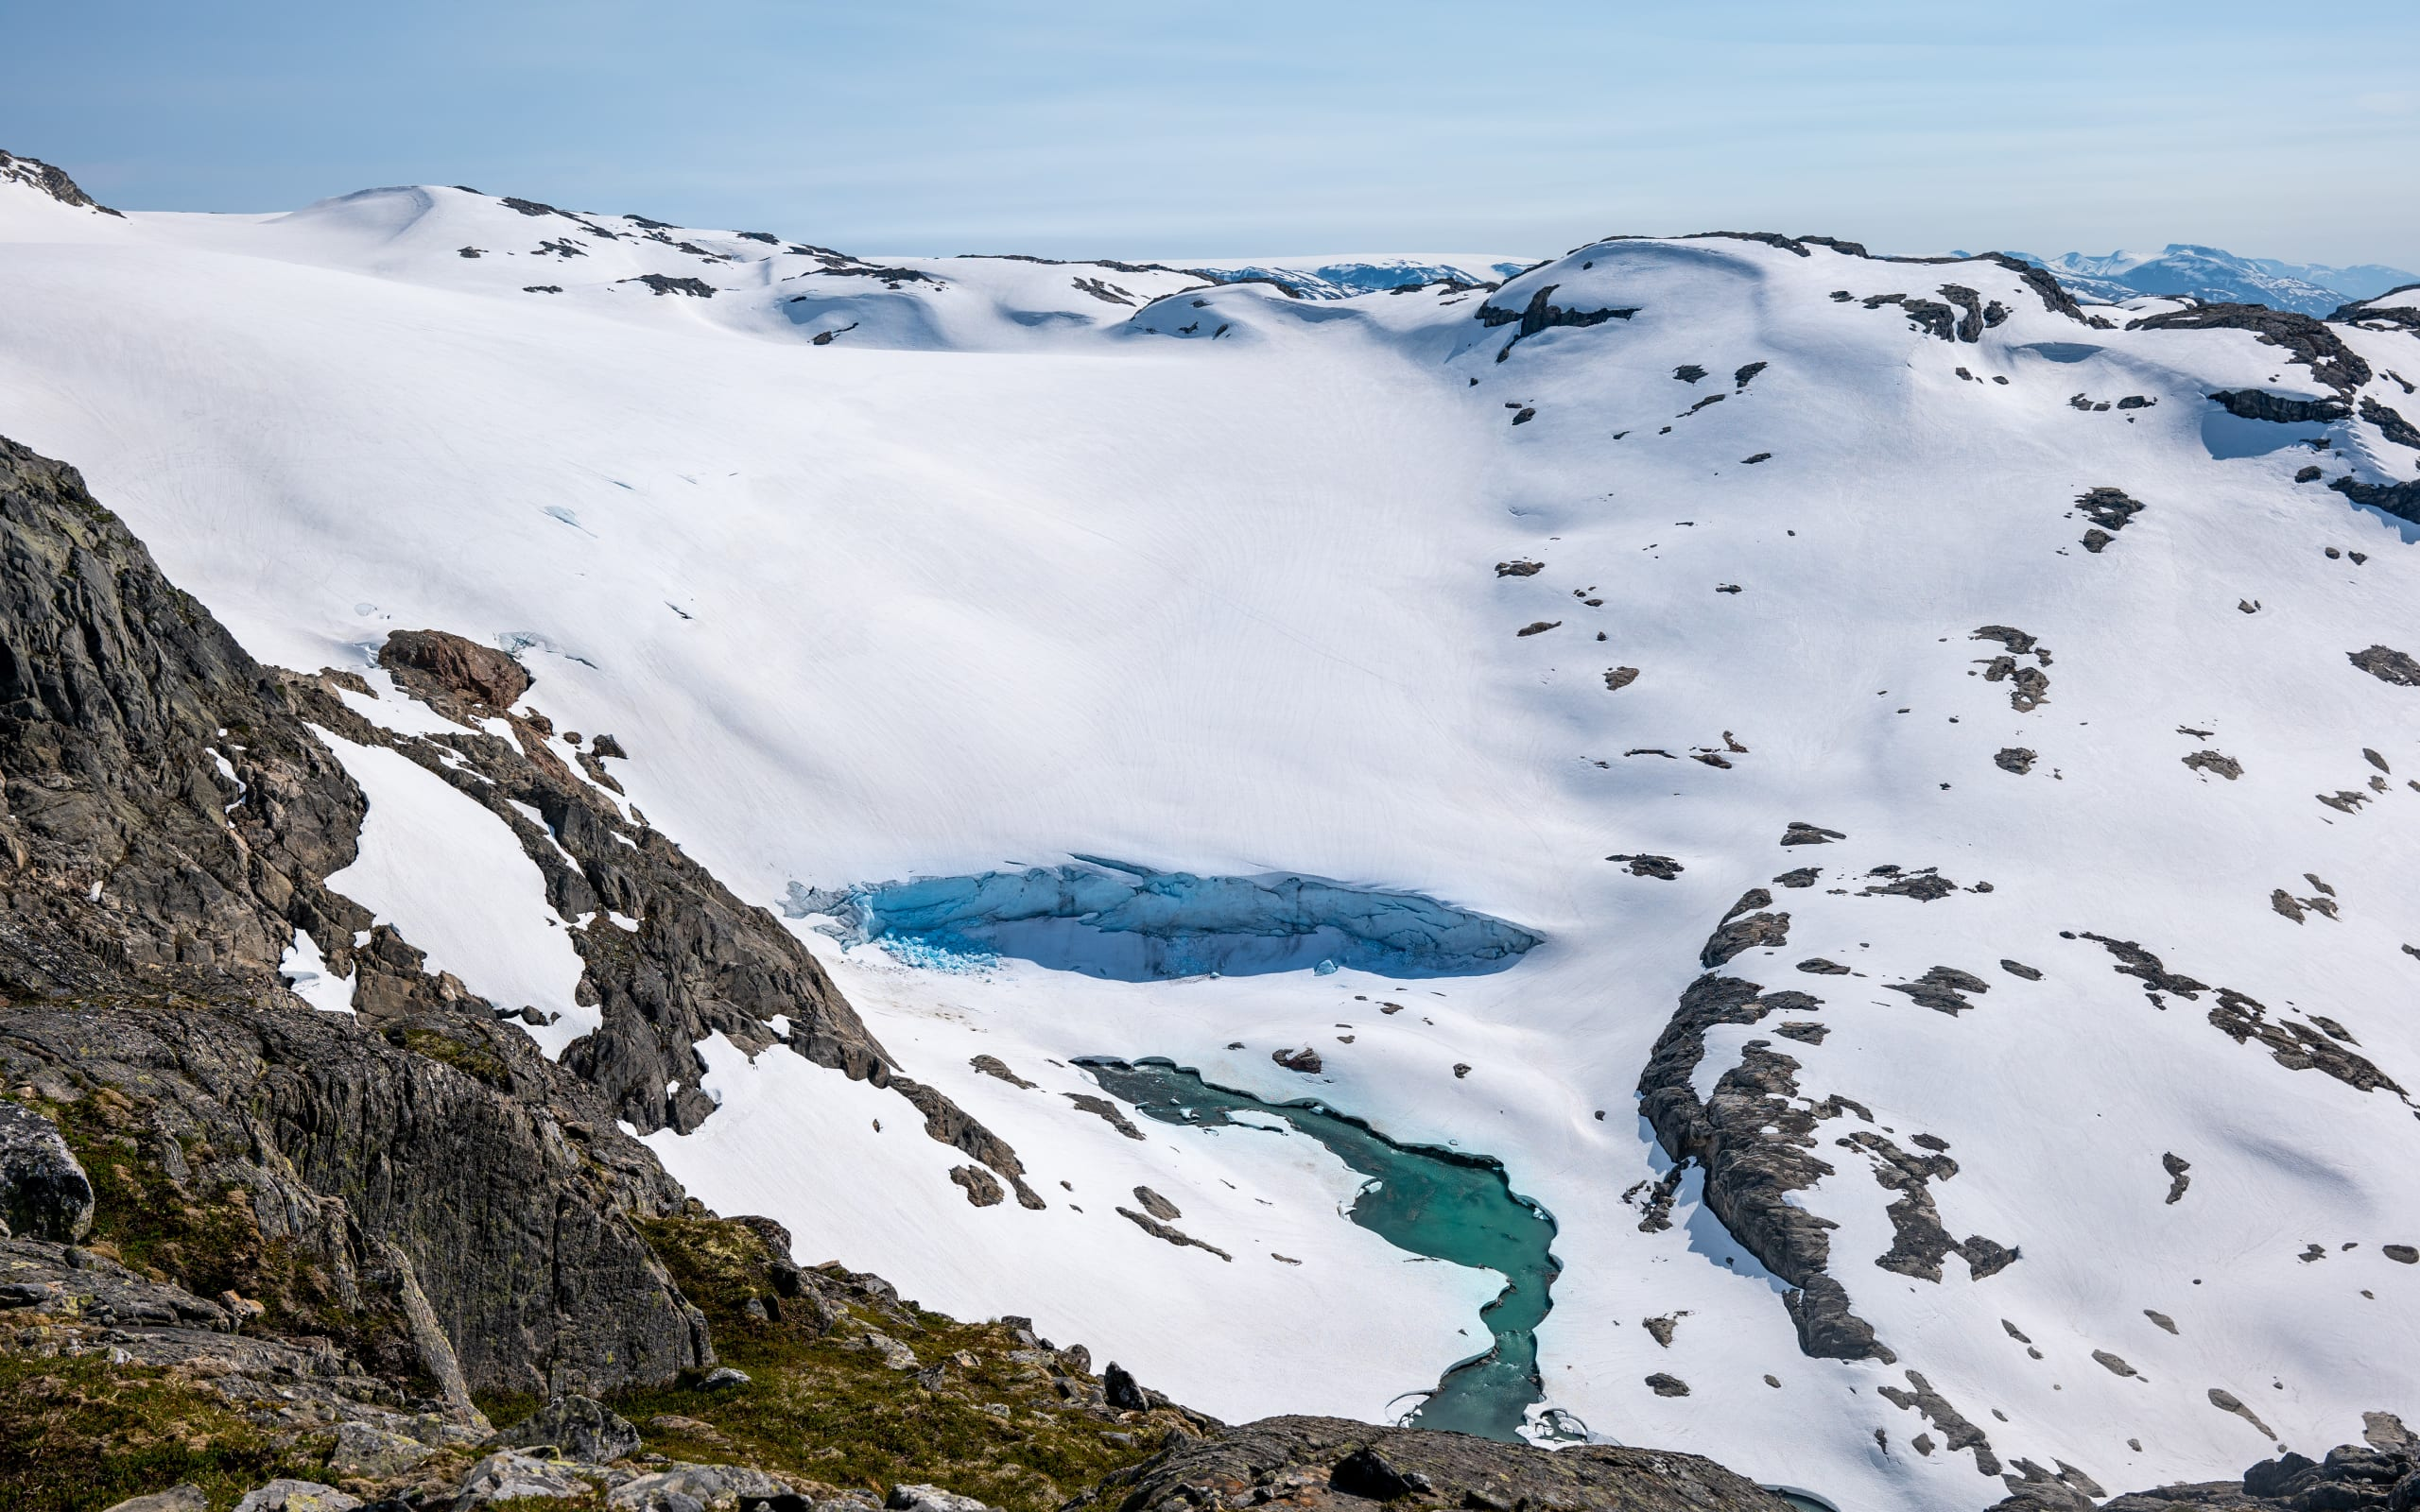 Snow covering the Folgefonna glacier